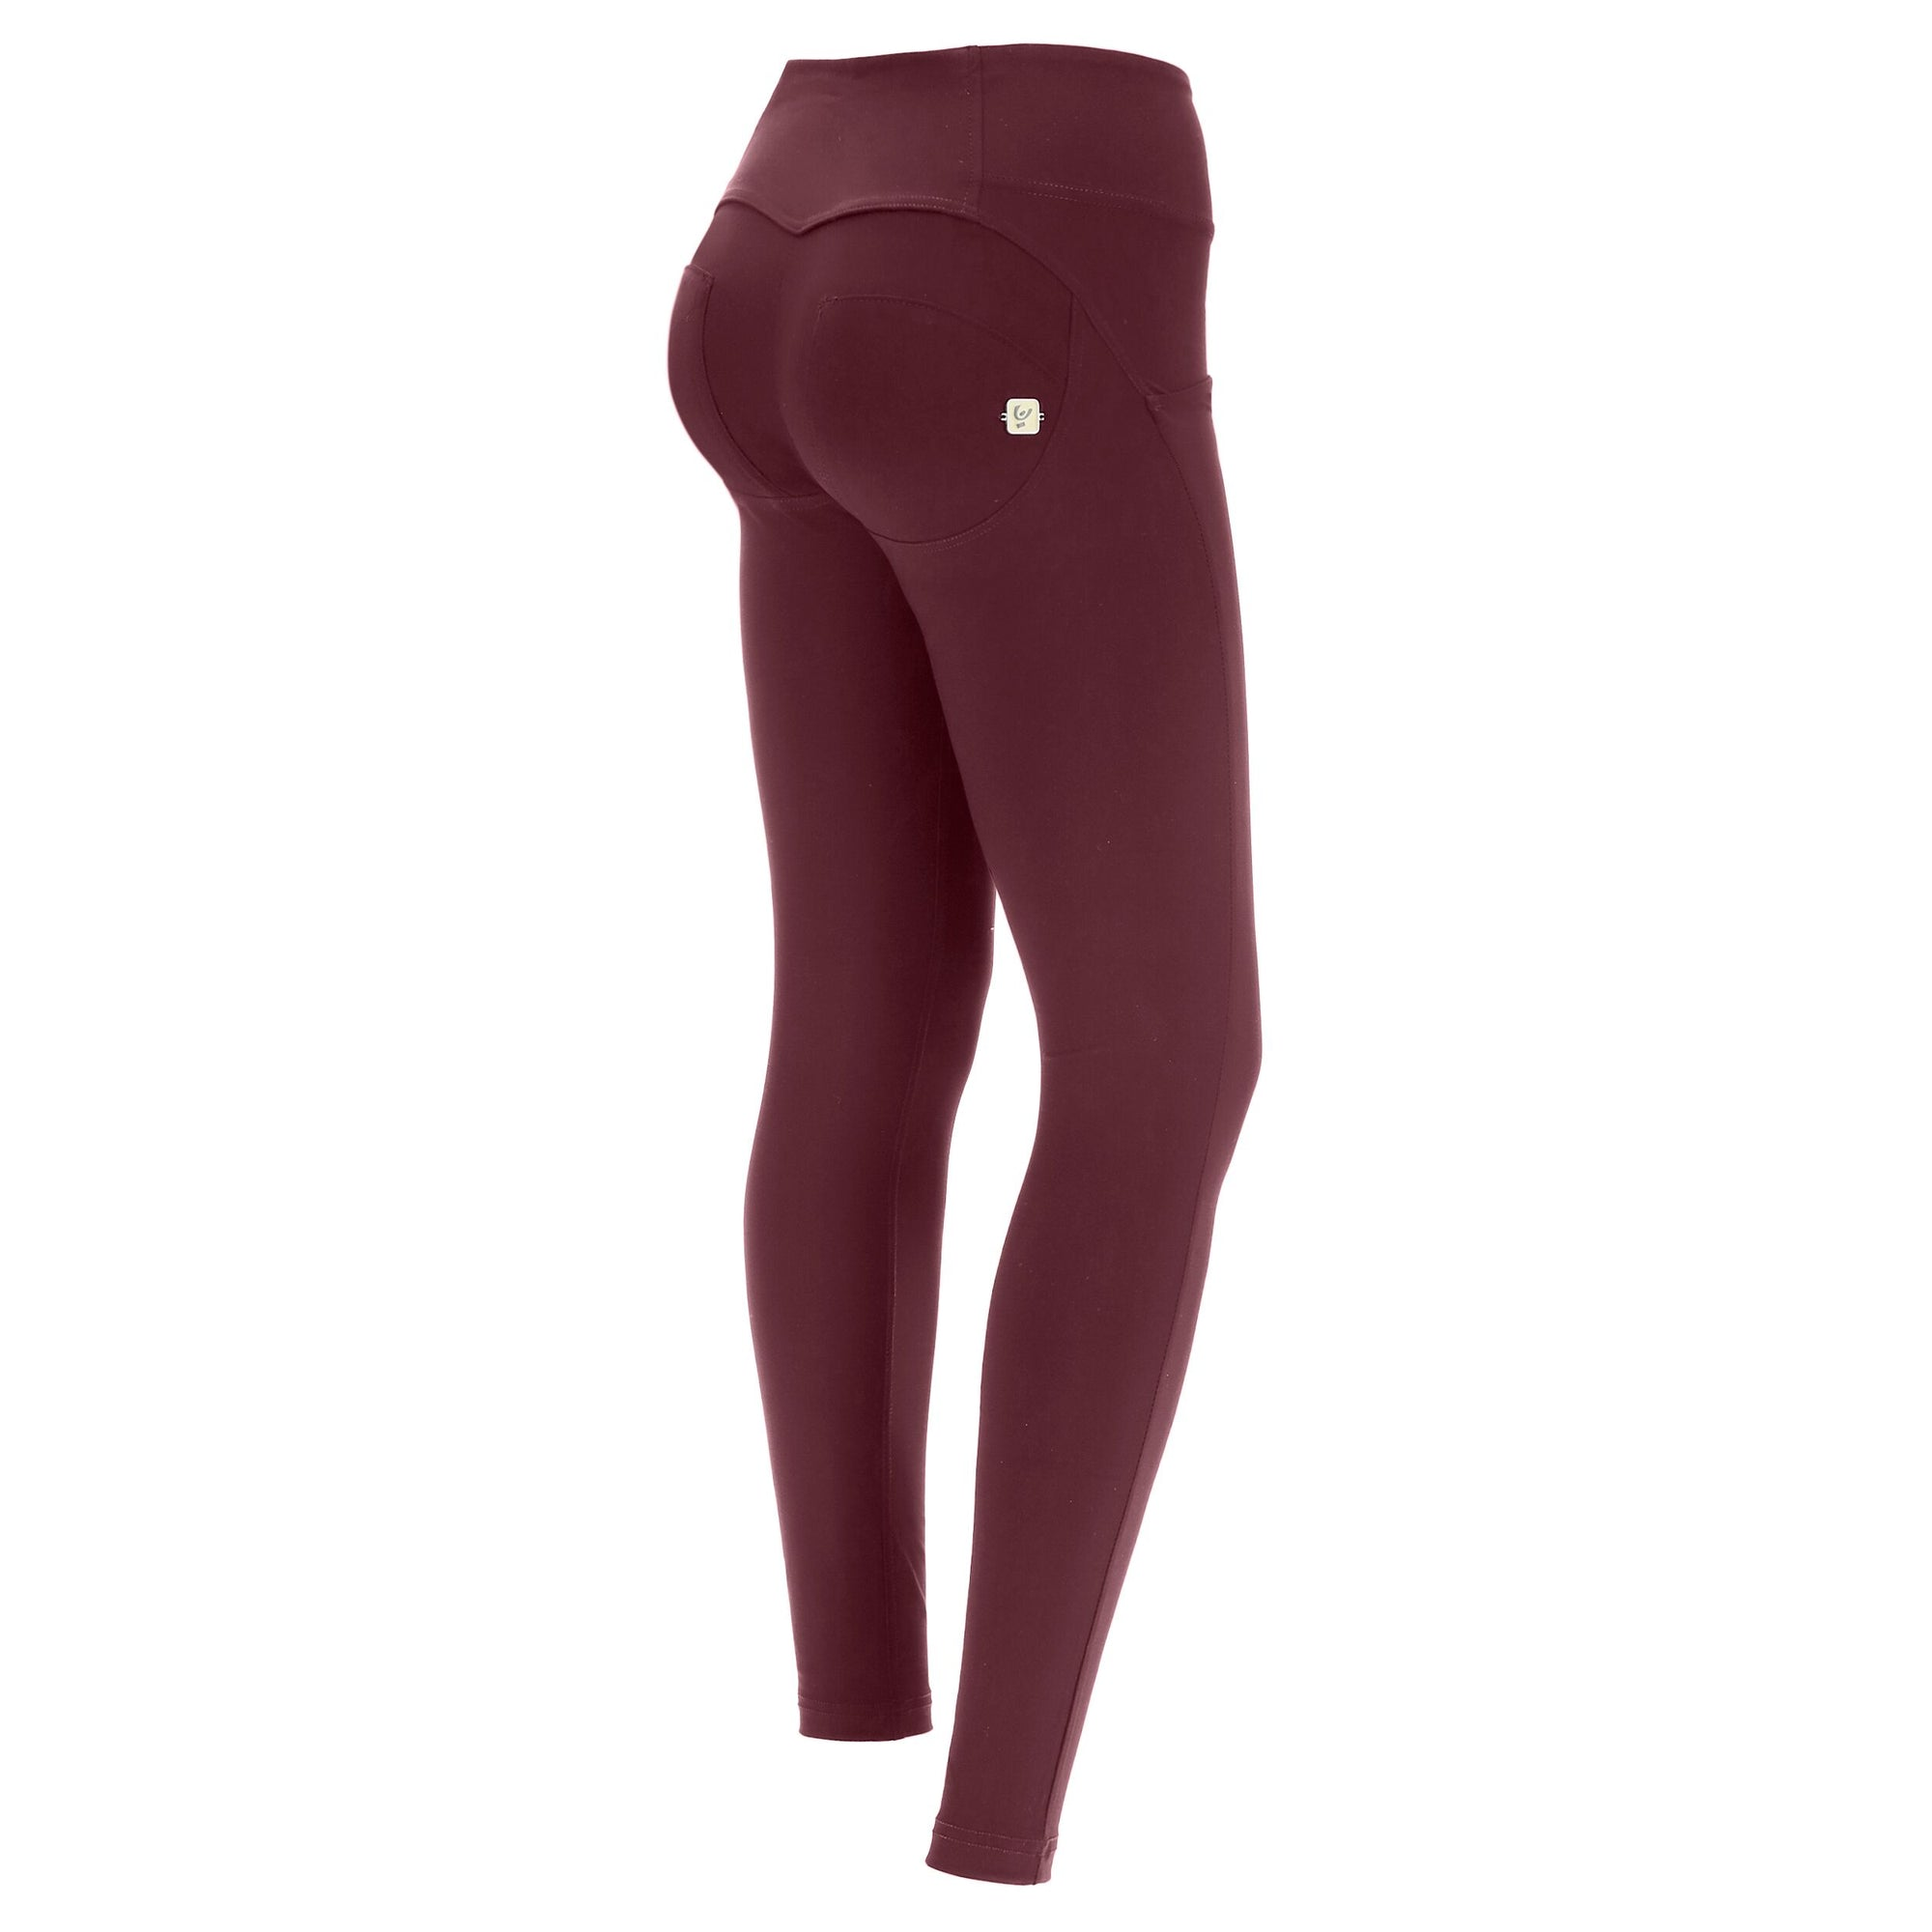 WR.UP® D.I.W.O.® Pro - Mid Rise Full Length 3 Button - Bordeaux